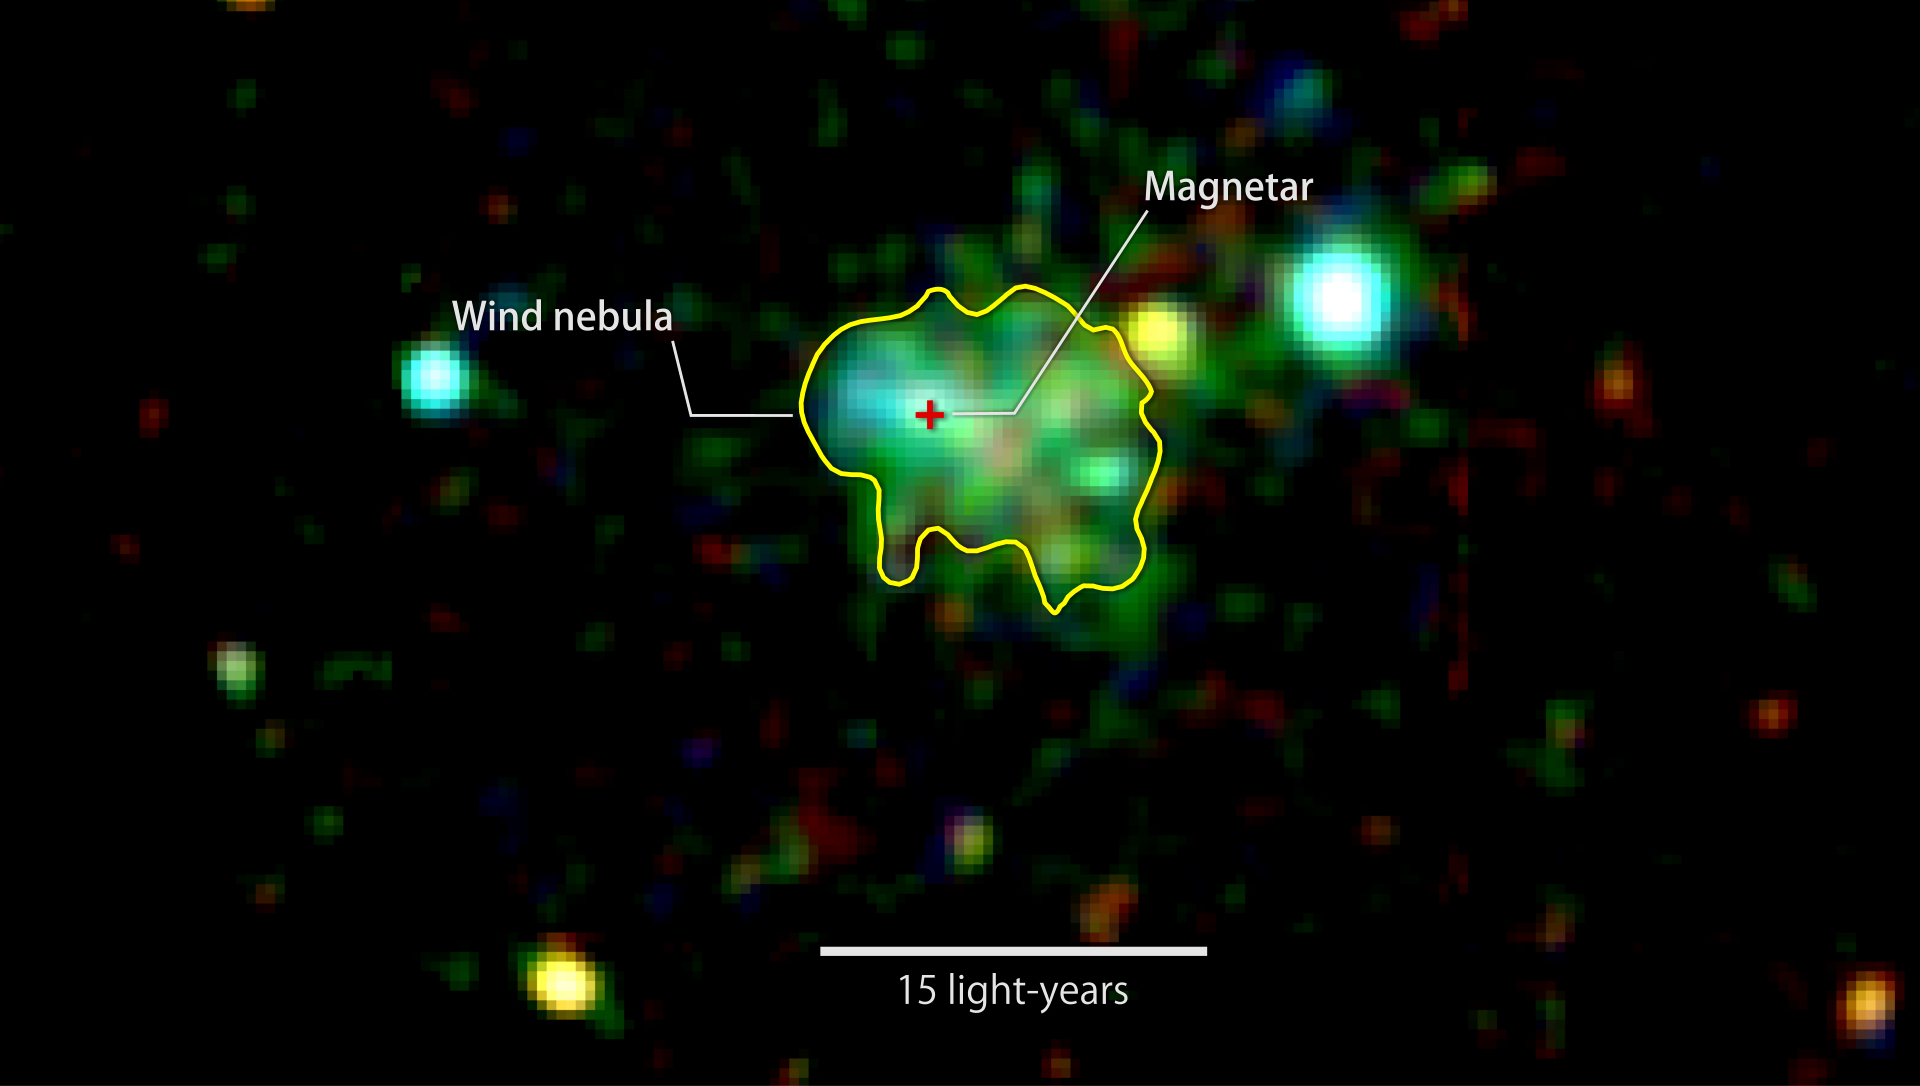 This X-ray image shows extended emission around a source known as Swift J1834.9-0846, a rare ultra-magnetic neutron star called a magnetar. The glow arises from a cloud of fast-moving particles produced by the neutron star and corralled around it. Color indicates X-ray energies, with 2,000-3,000 electron volts (eV) in red, 3,000-4,500 eV in green, and 5,000 to 10,000 eV in blue. The image combines observations by the European Space Agency's XMM-Newton spacecraft taken on March 16 and Oct. 16, 2014.